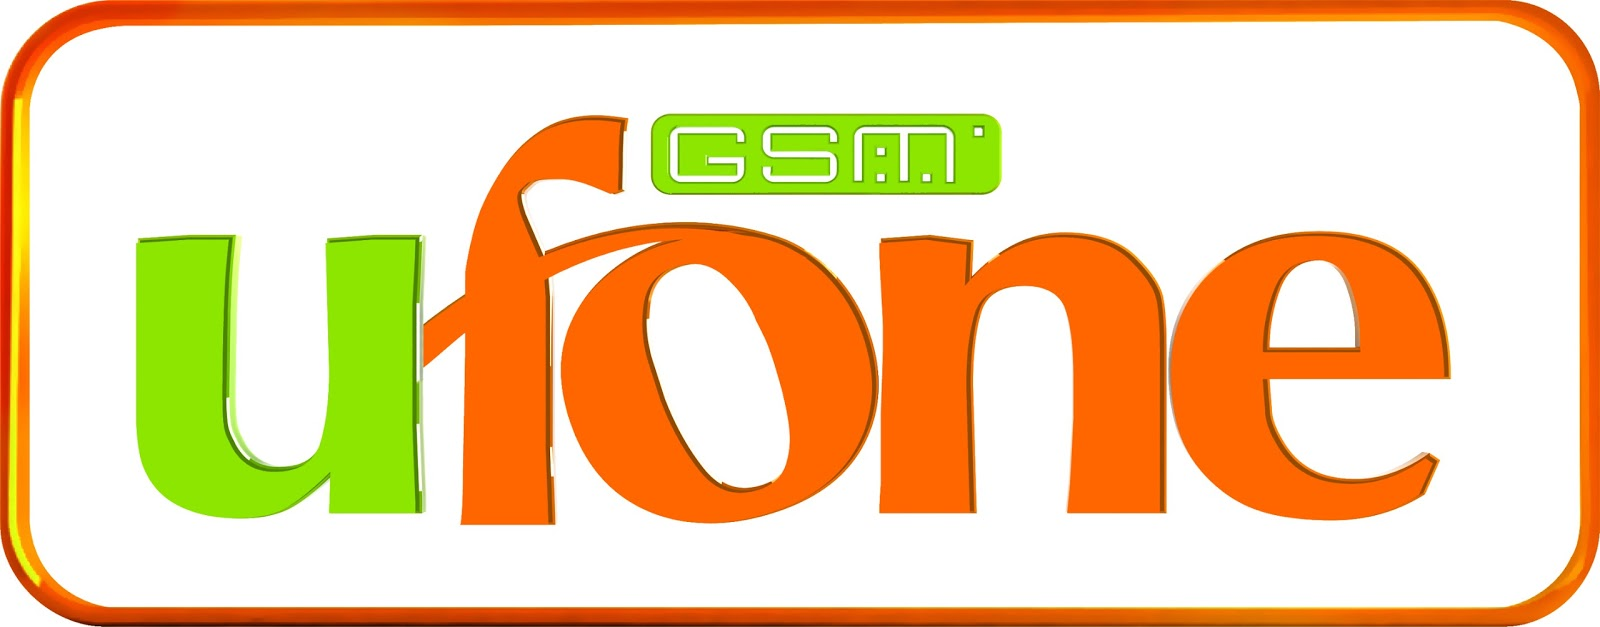 Ufone Weekly Bolo Pakistan Offer for just Rs 84+tax per week   MyWords